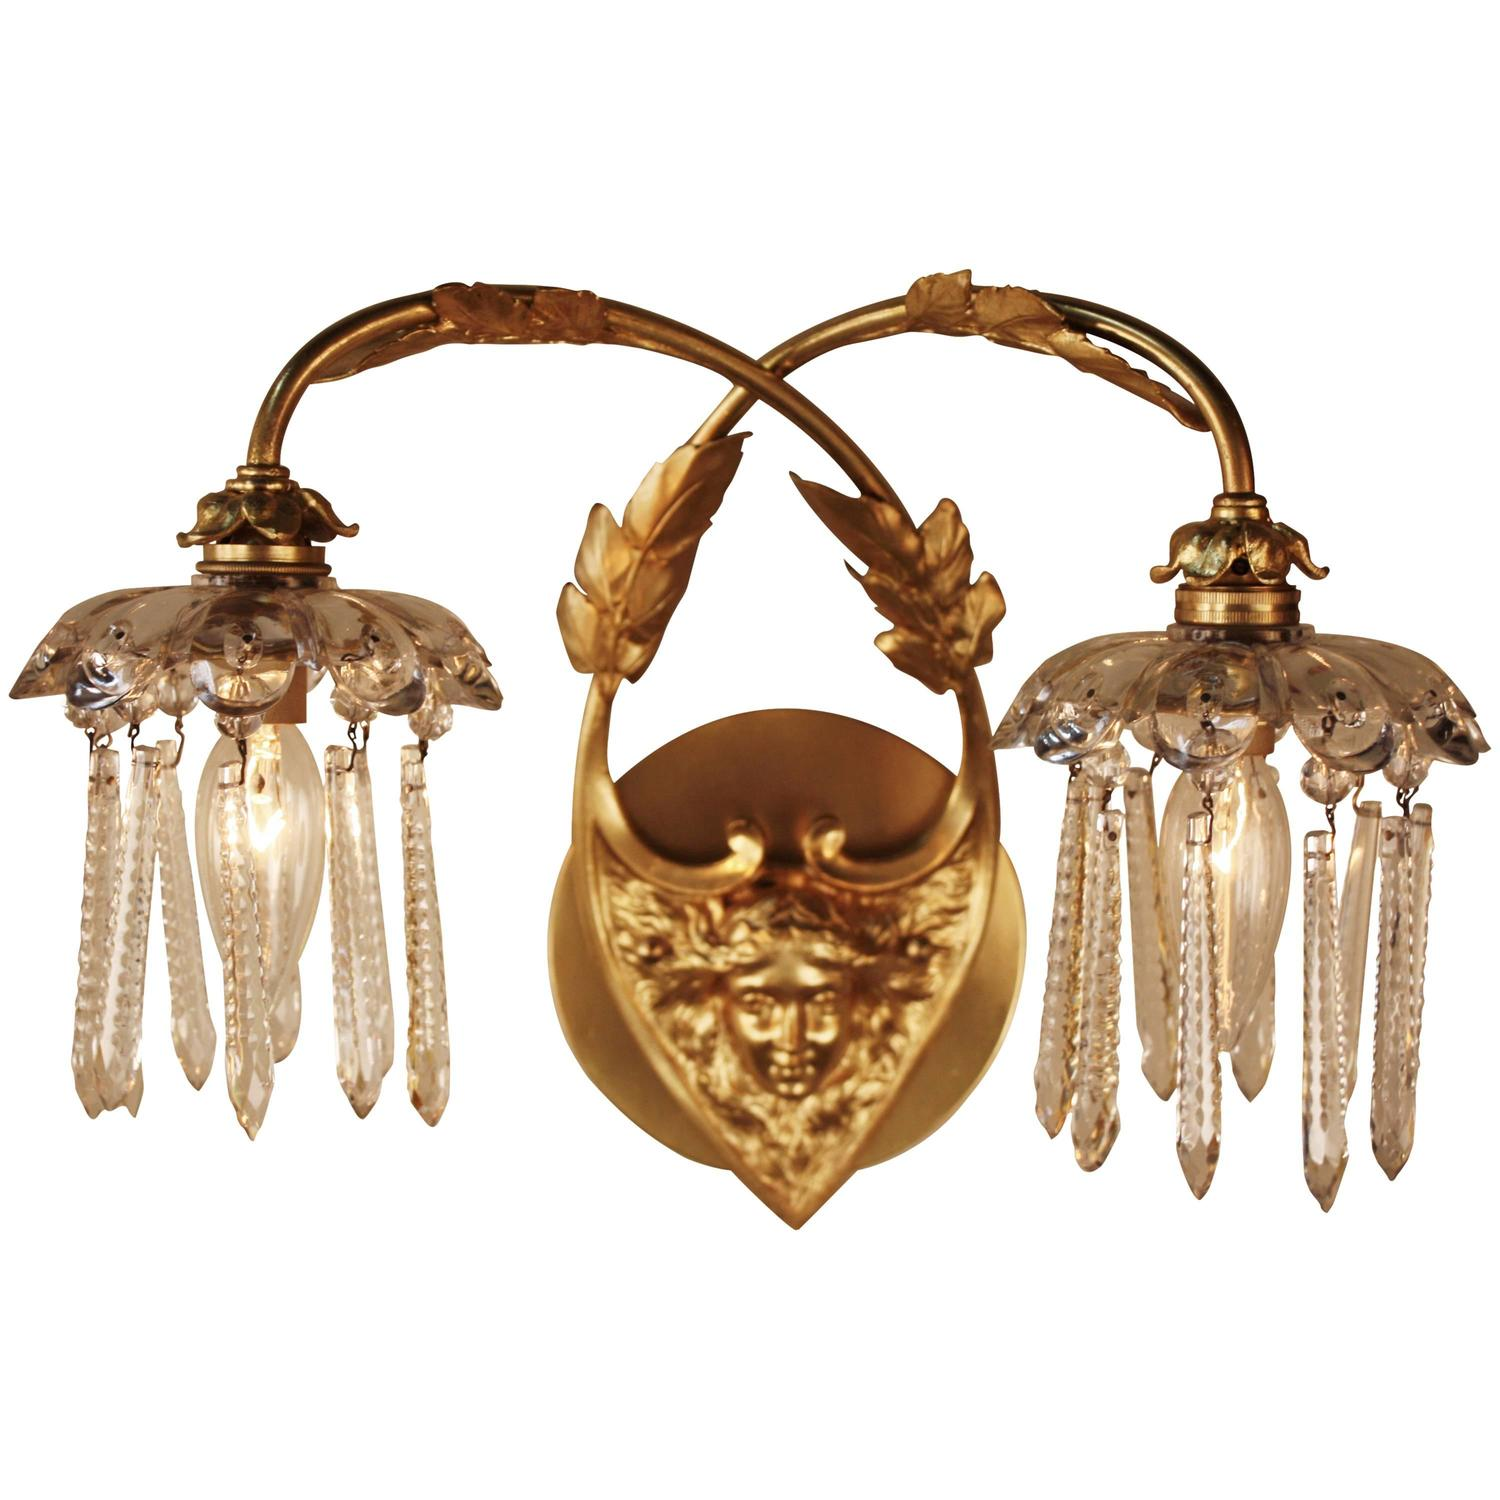 Pair of Art Nouveau Bronze and Crystal Wall Sconces by Greiner For Sale at 1stdibs